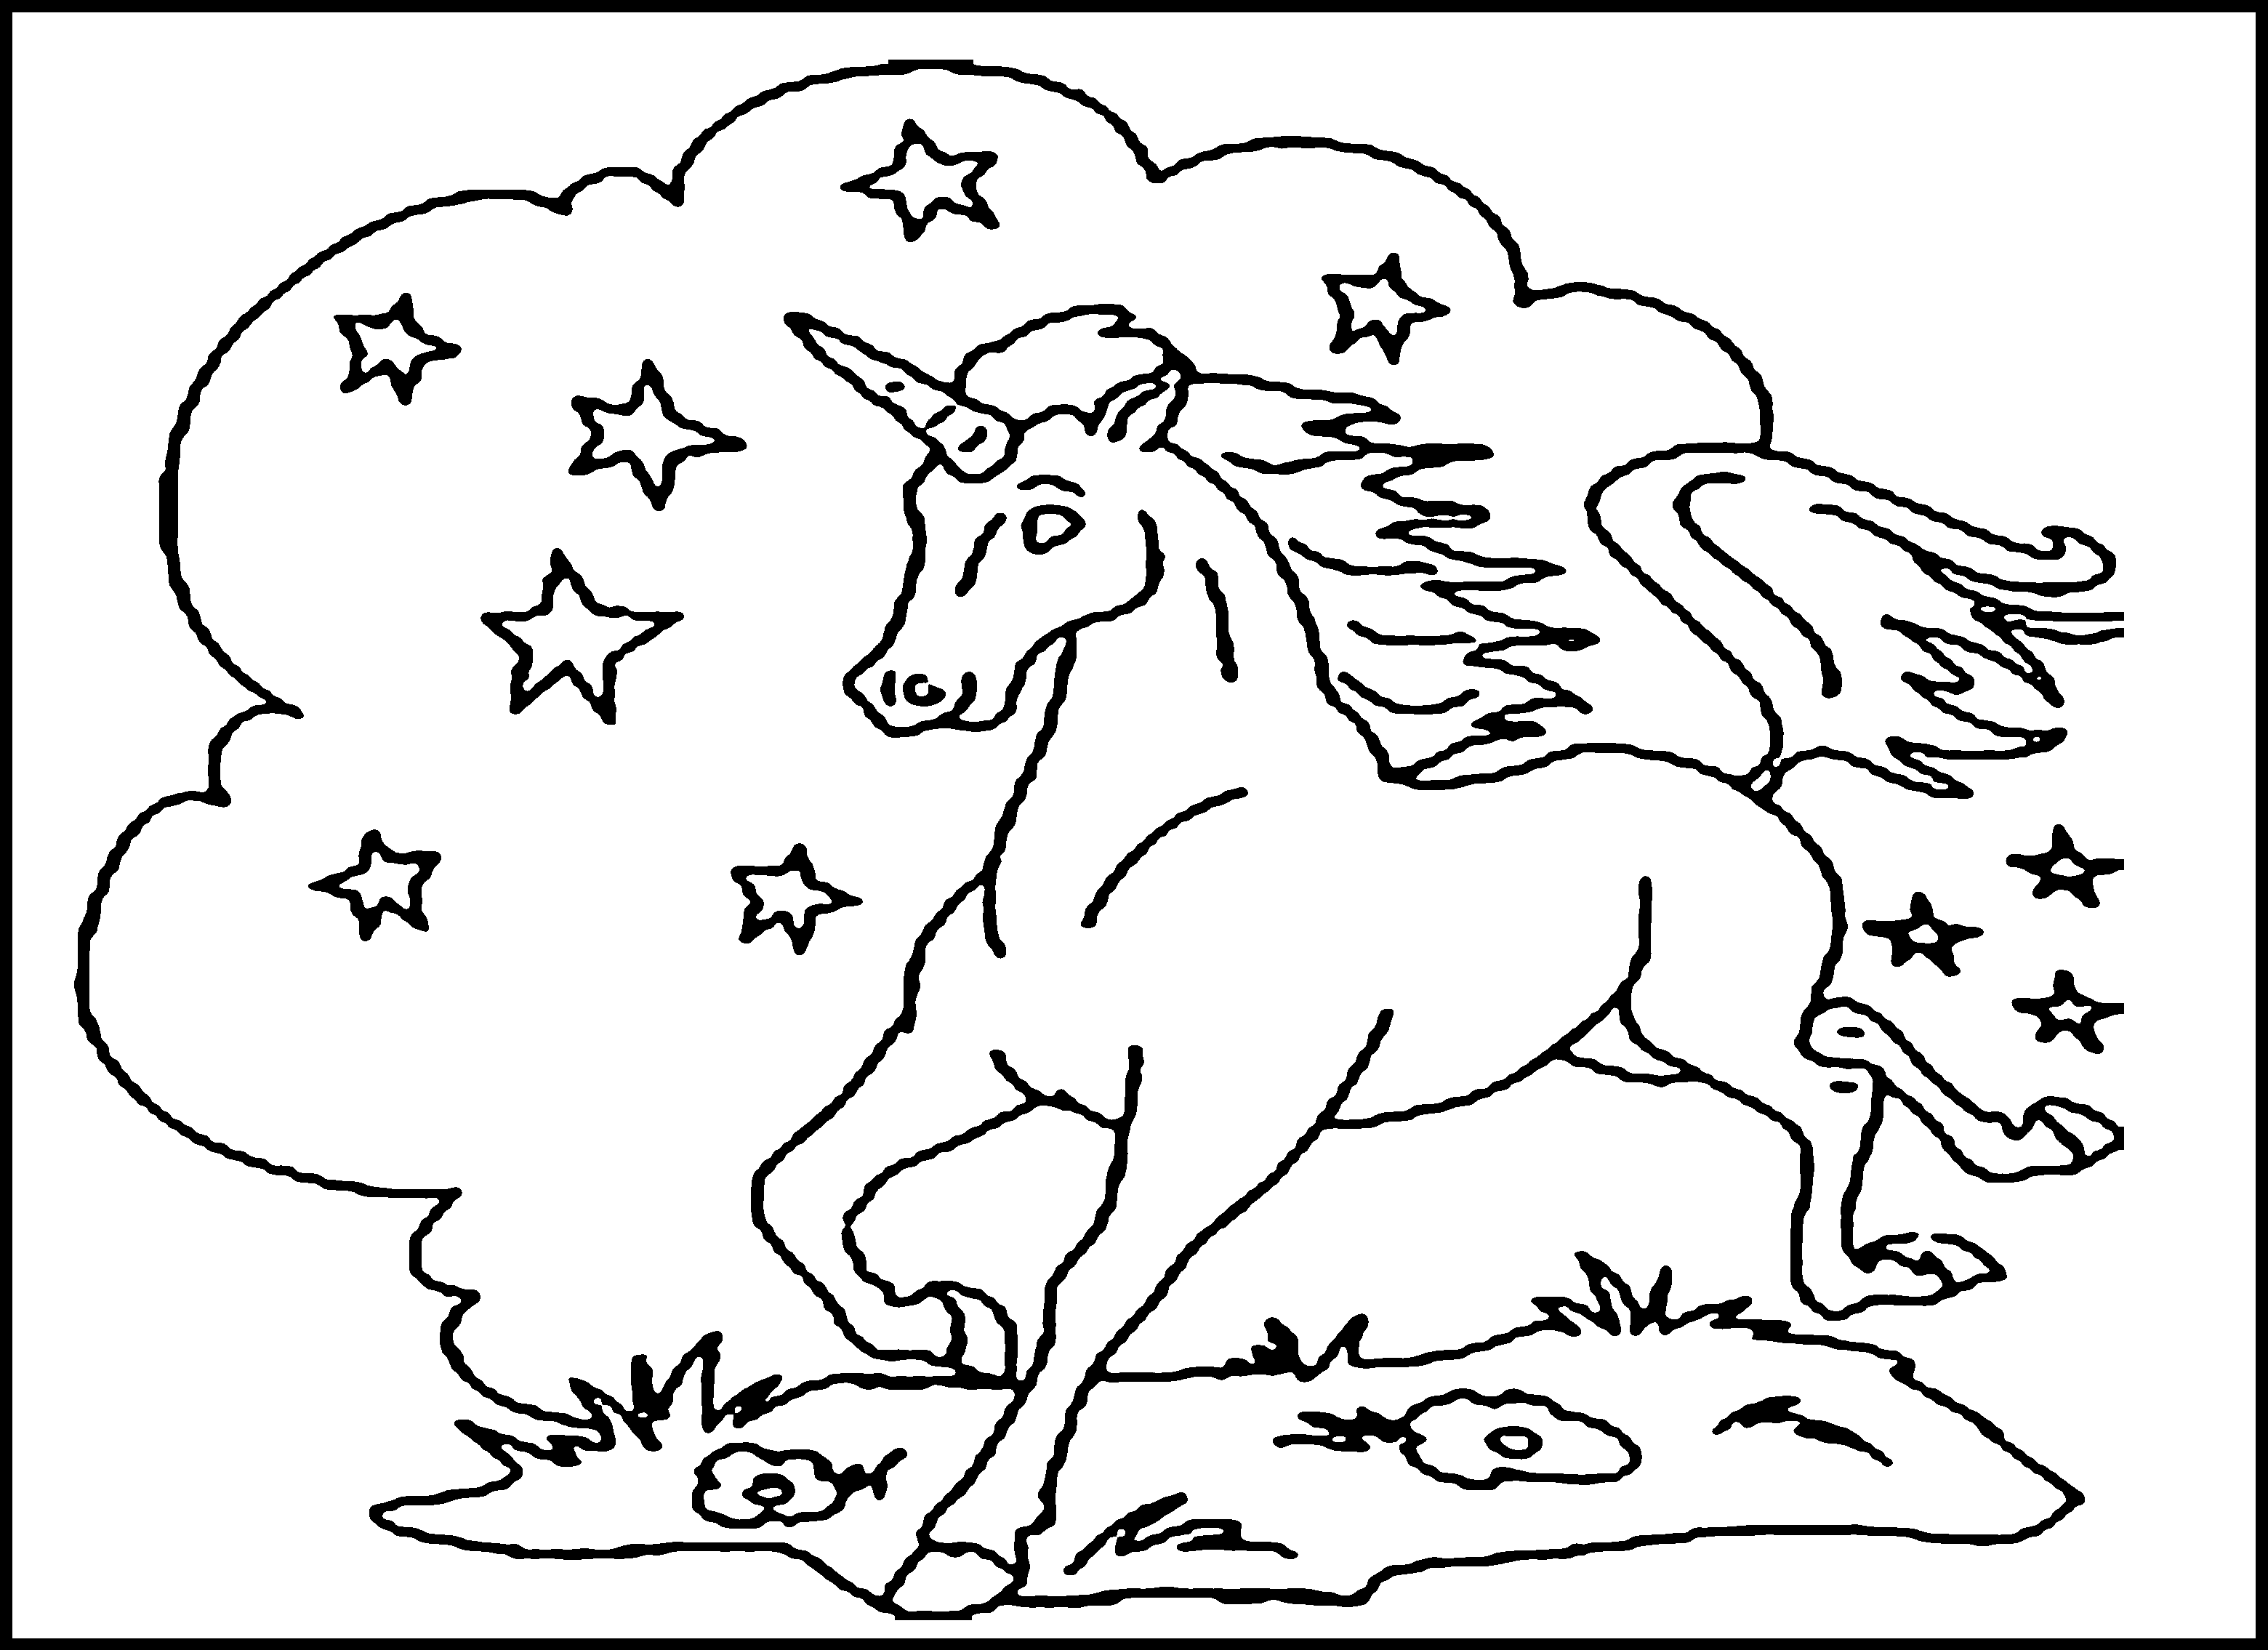 unicorn printable coloring pages - Coloring Books Printable